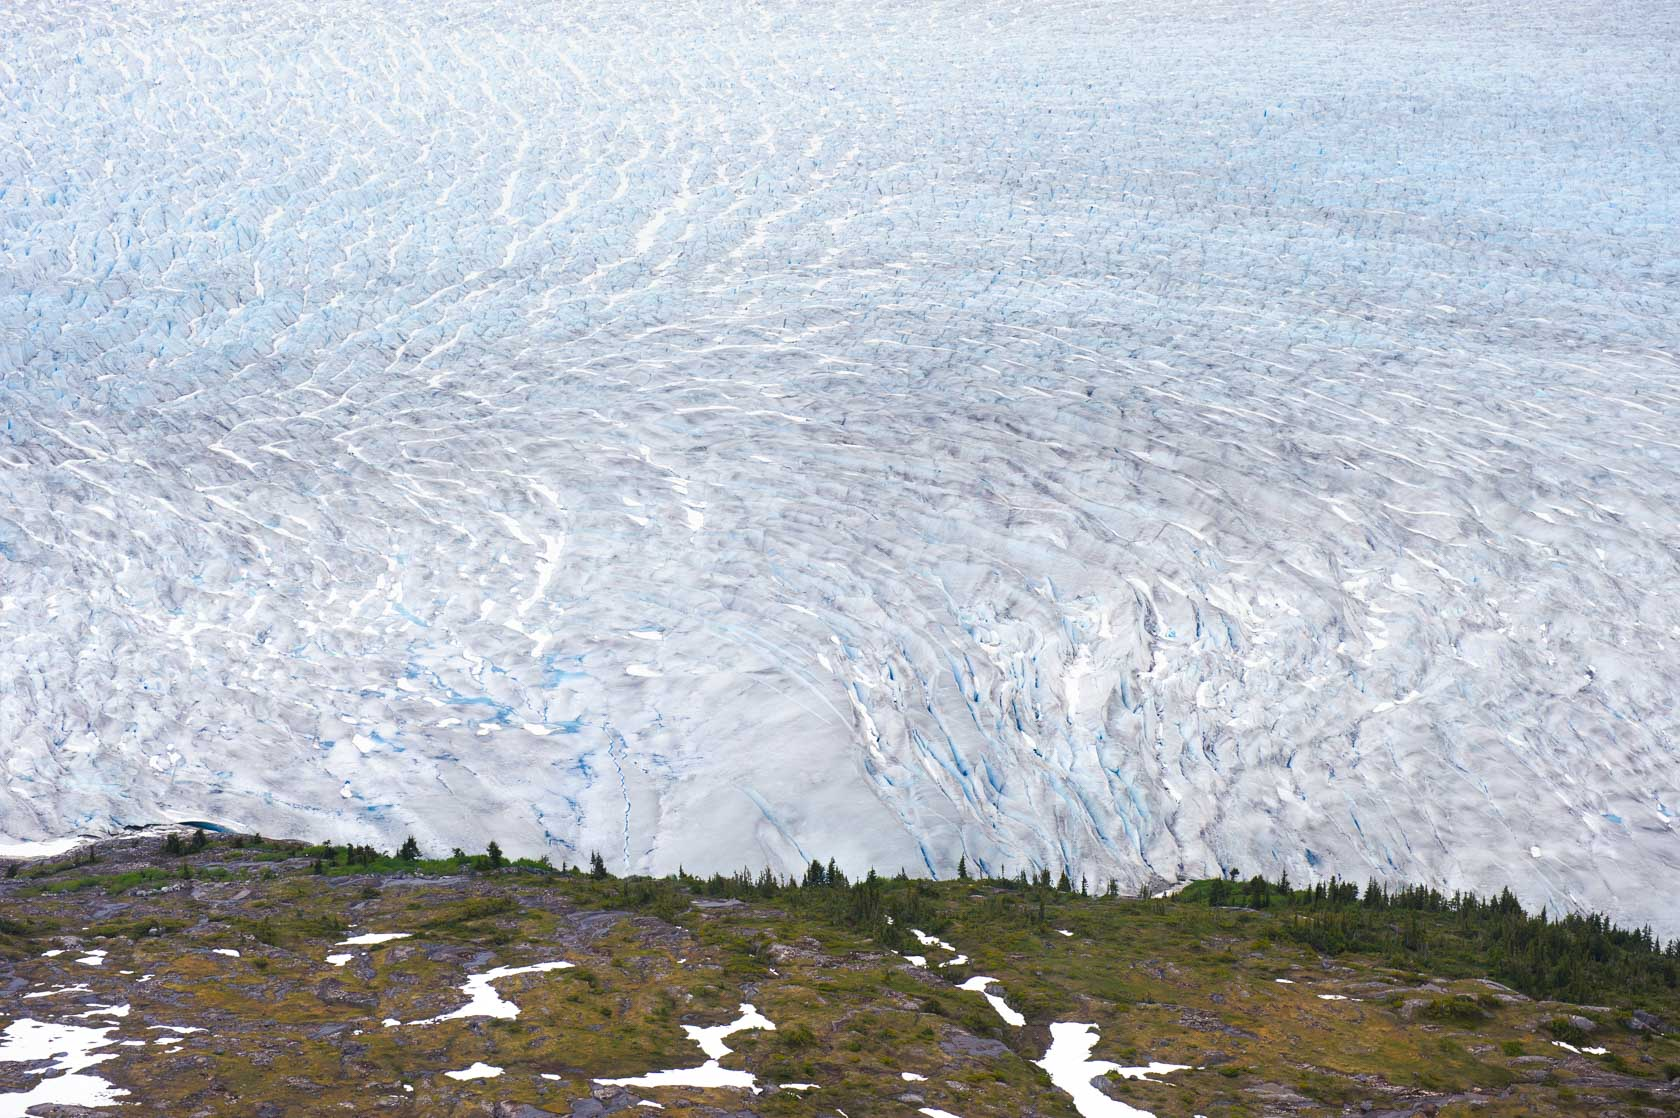 The Taku Glacier, Tongass National Forest